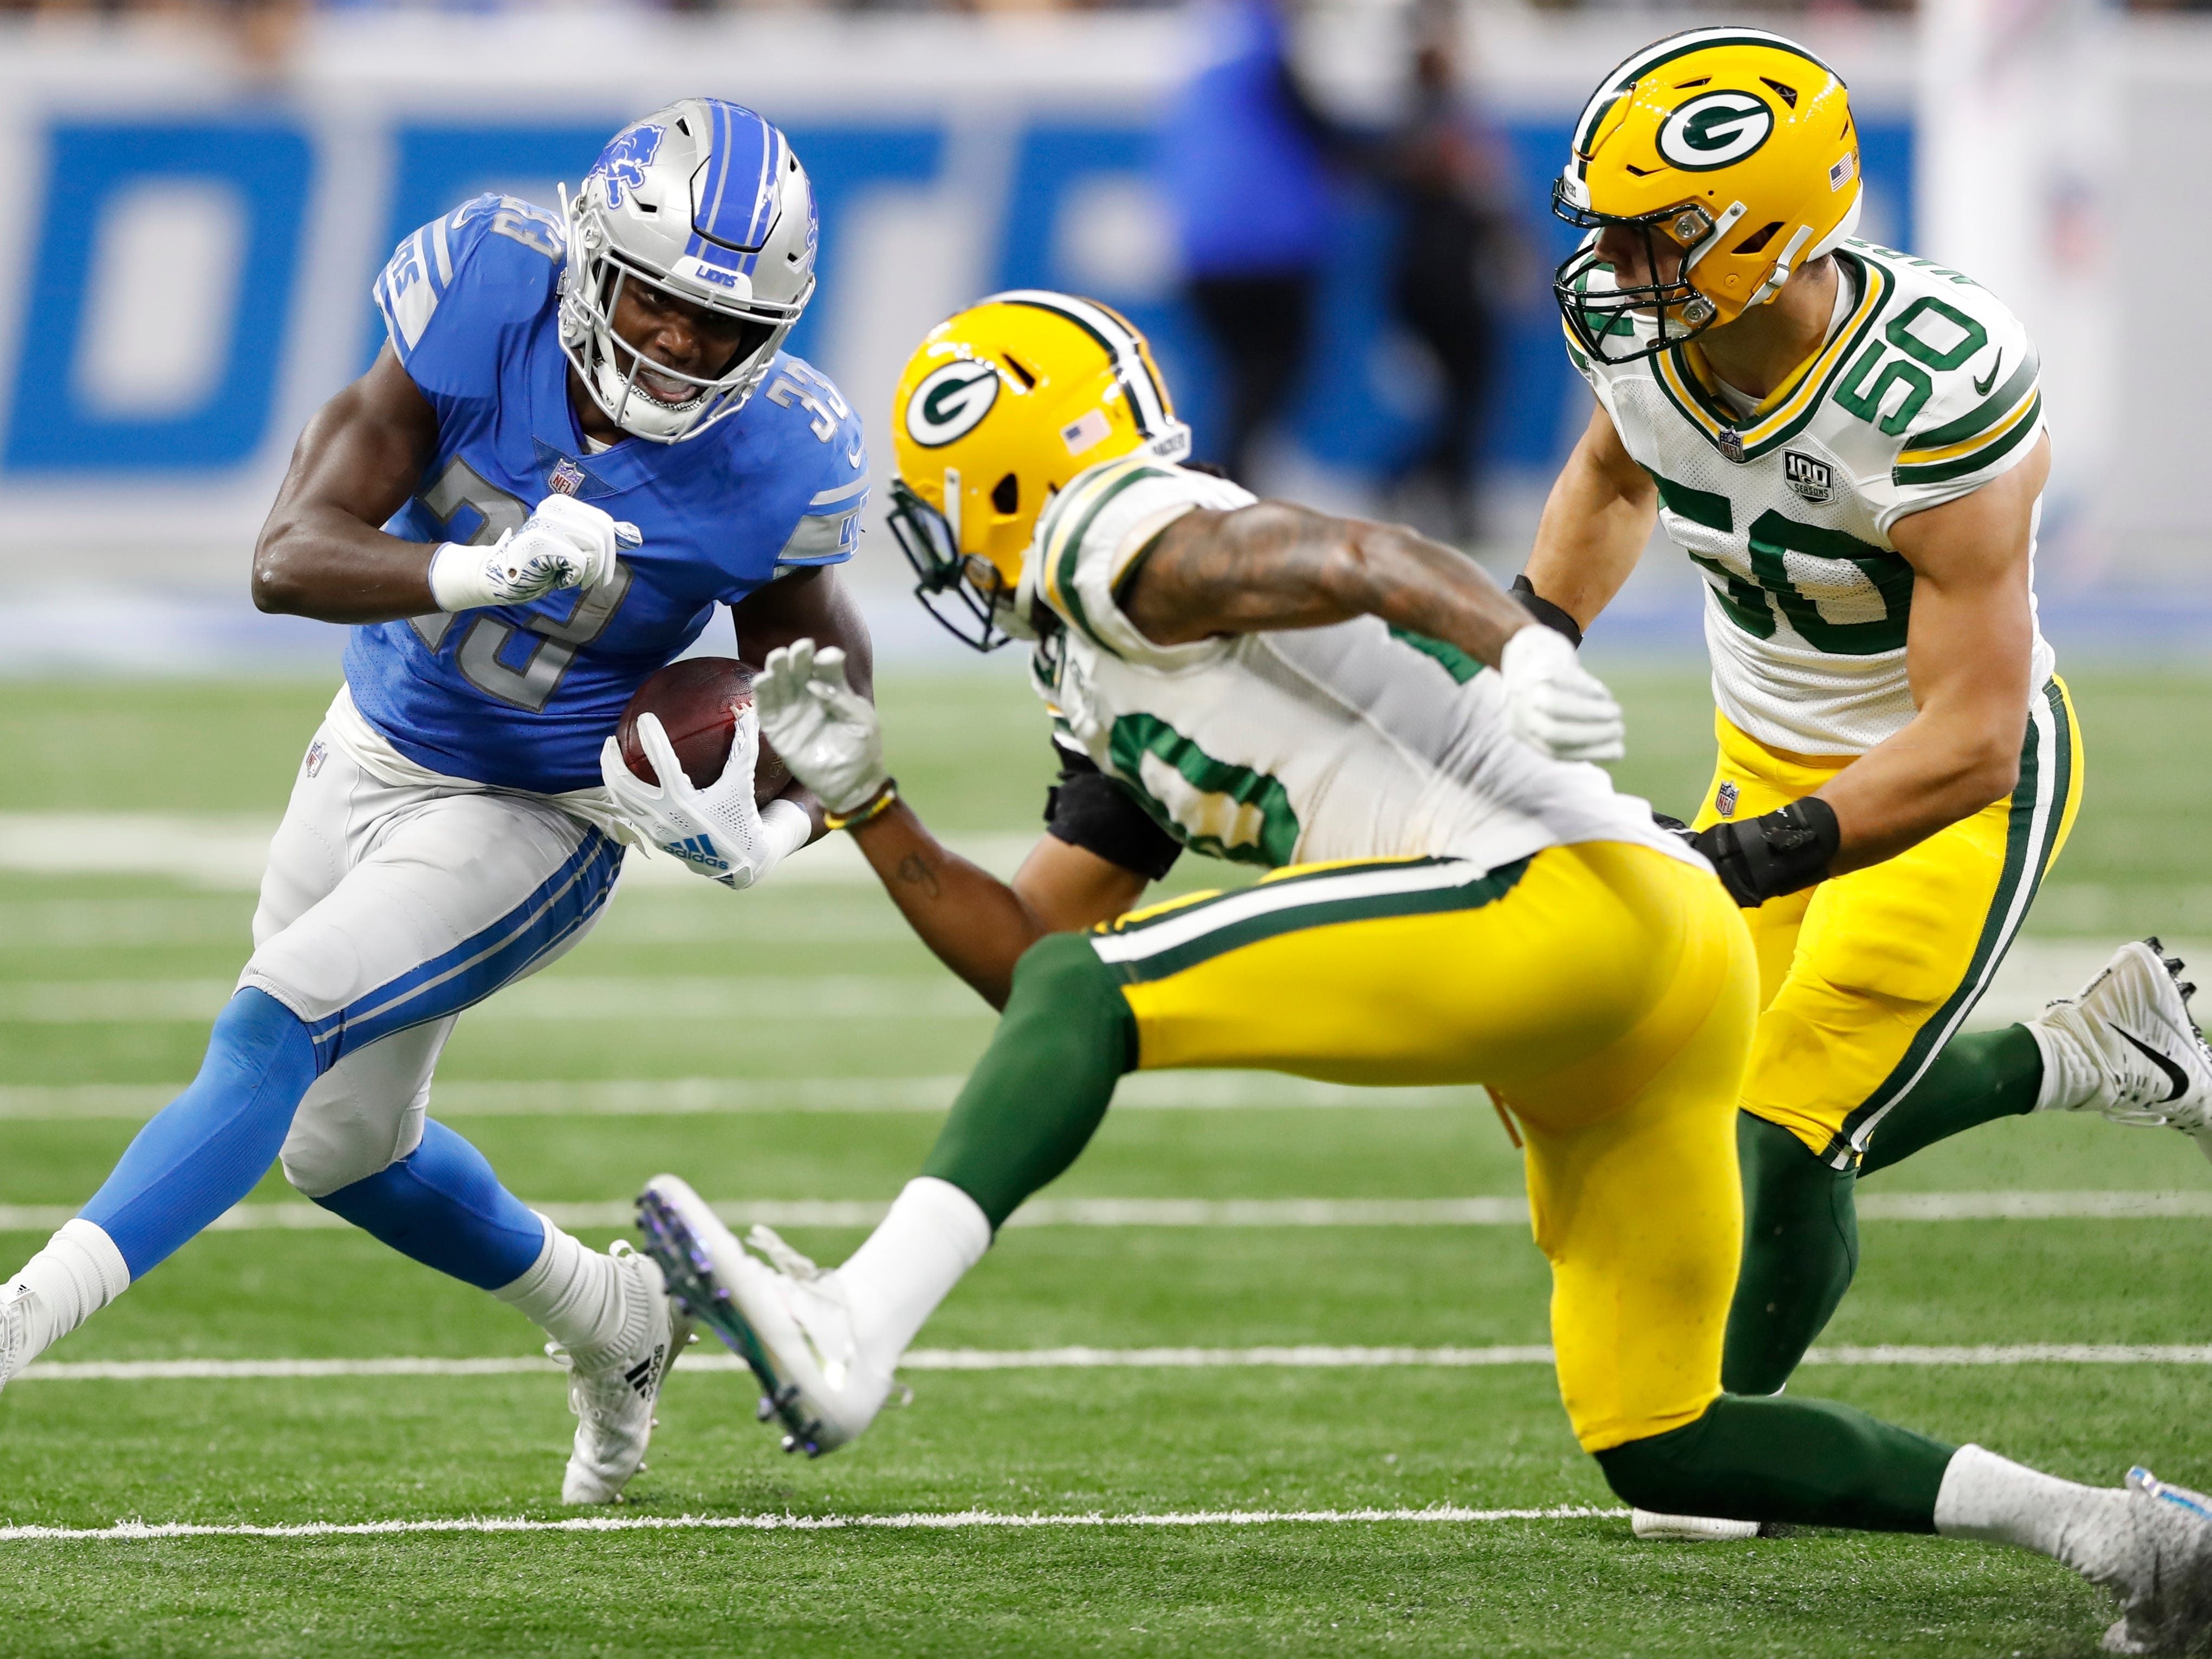 Green Bay Packers cornerback Kevin King (20) and linebacker Blake Martinez (50) close in on Detroit Lions running back Kerryon Johnson (33) during the first half of an NFL football game, Sunday, Oct. 7, 2018, in Detroit.